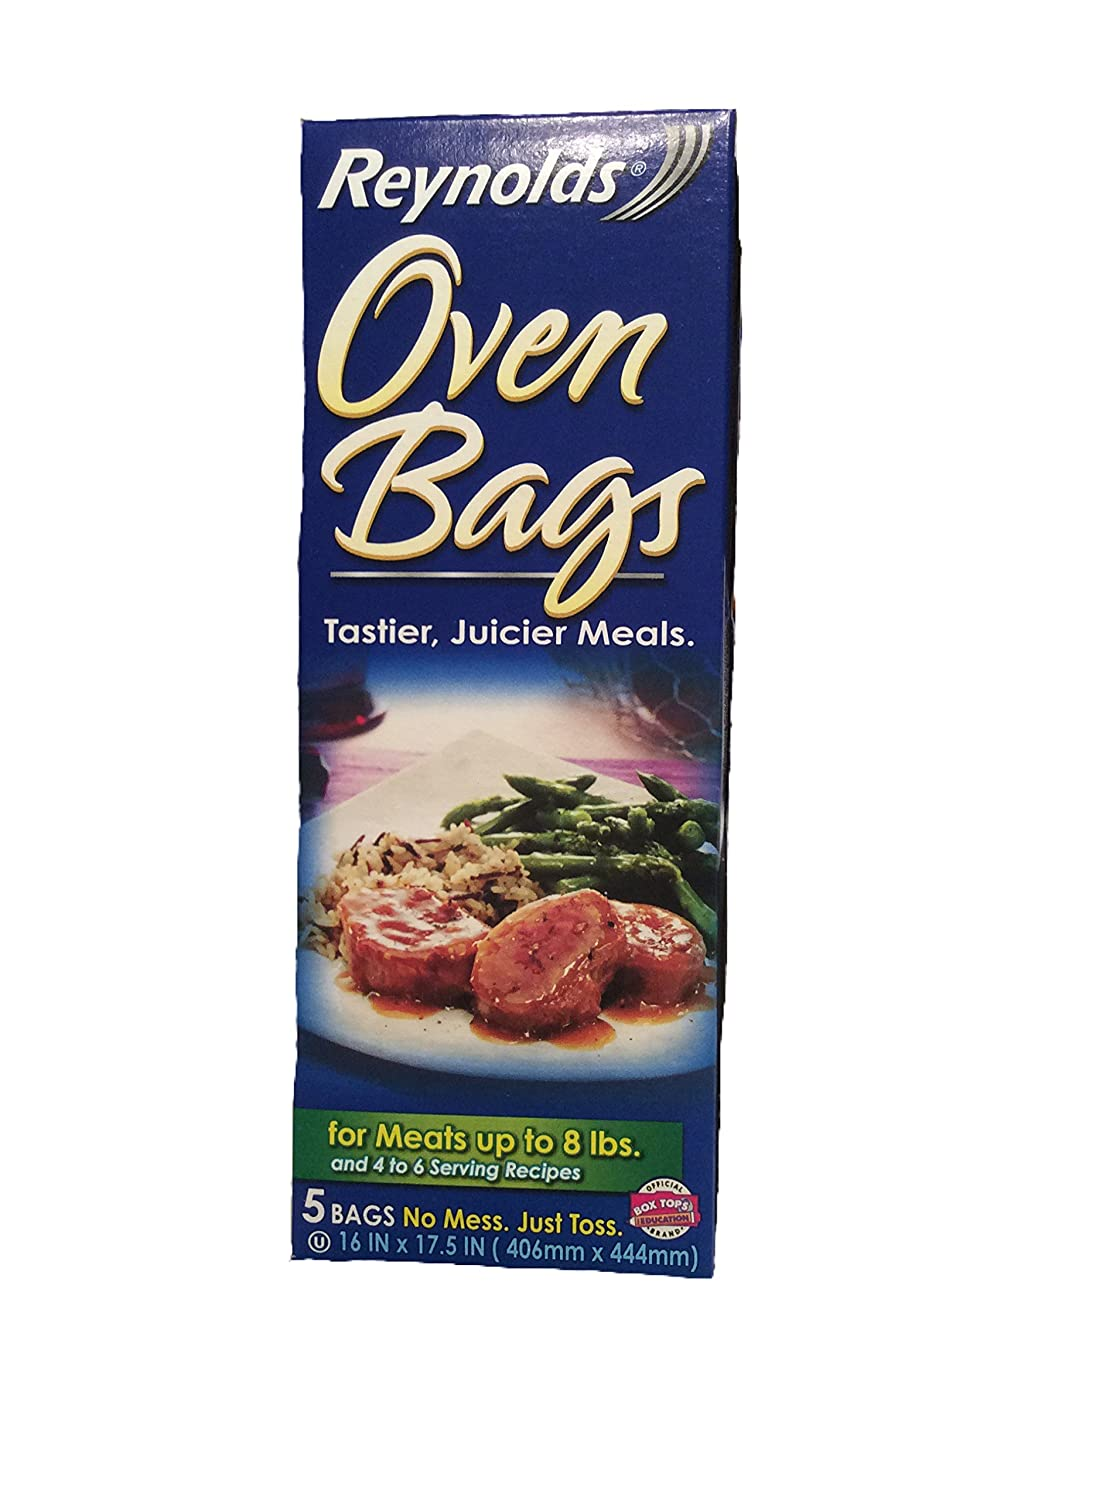 Reynolds Oven Bags, 5 Bag No Mess, For Meats up to 8 lbs and 4 to 6 Serving Recipes